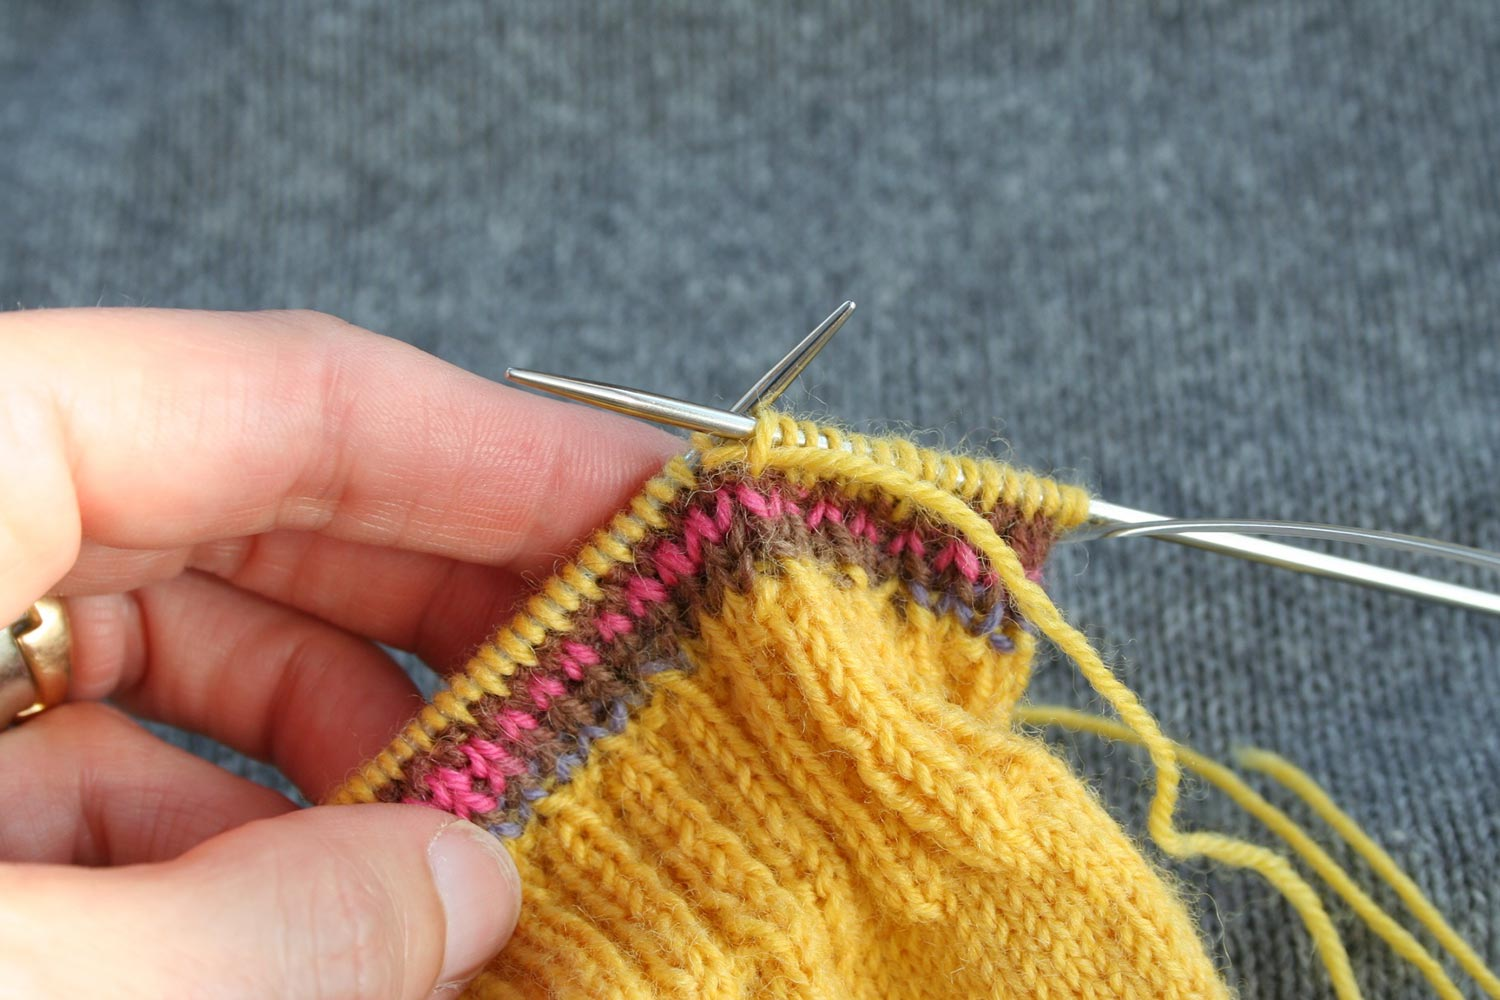 Knitting in the round with working yarn running through the first stitch on the left needle and then the last stitch on the right needle.